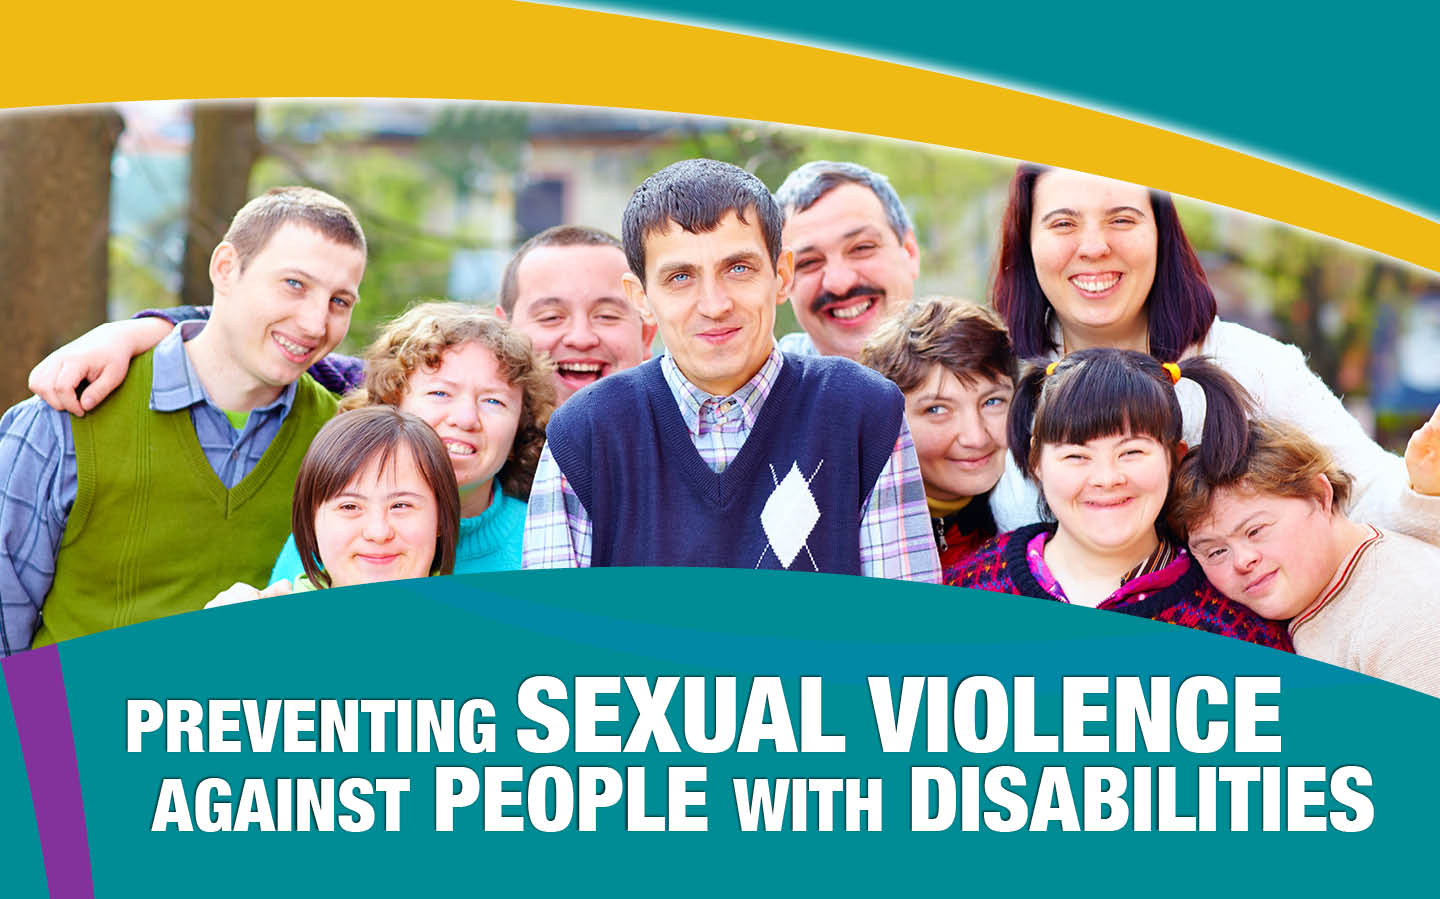 Preventing Sexual Violence against People with Disabilities